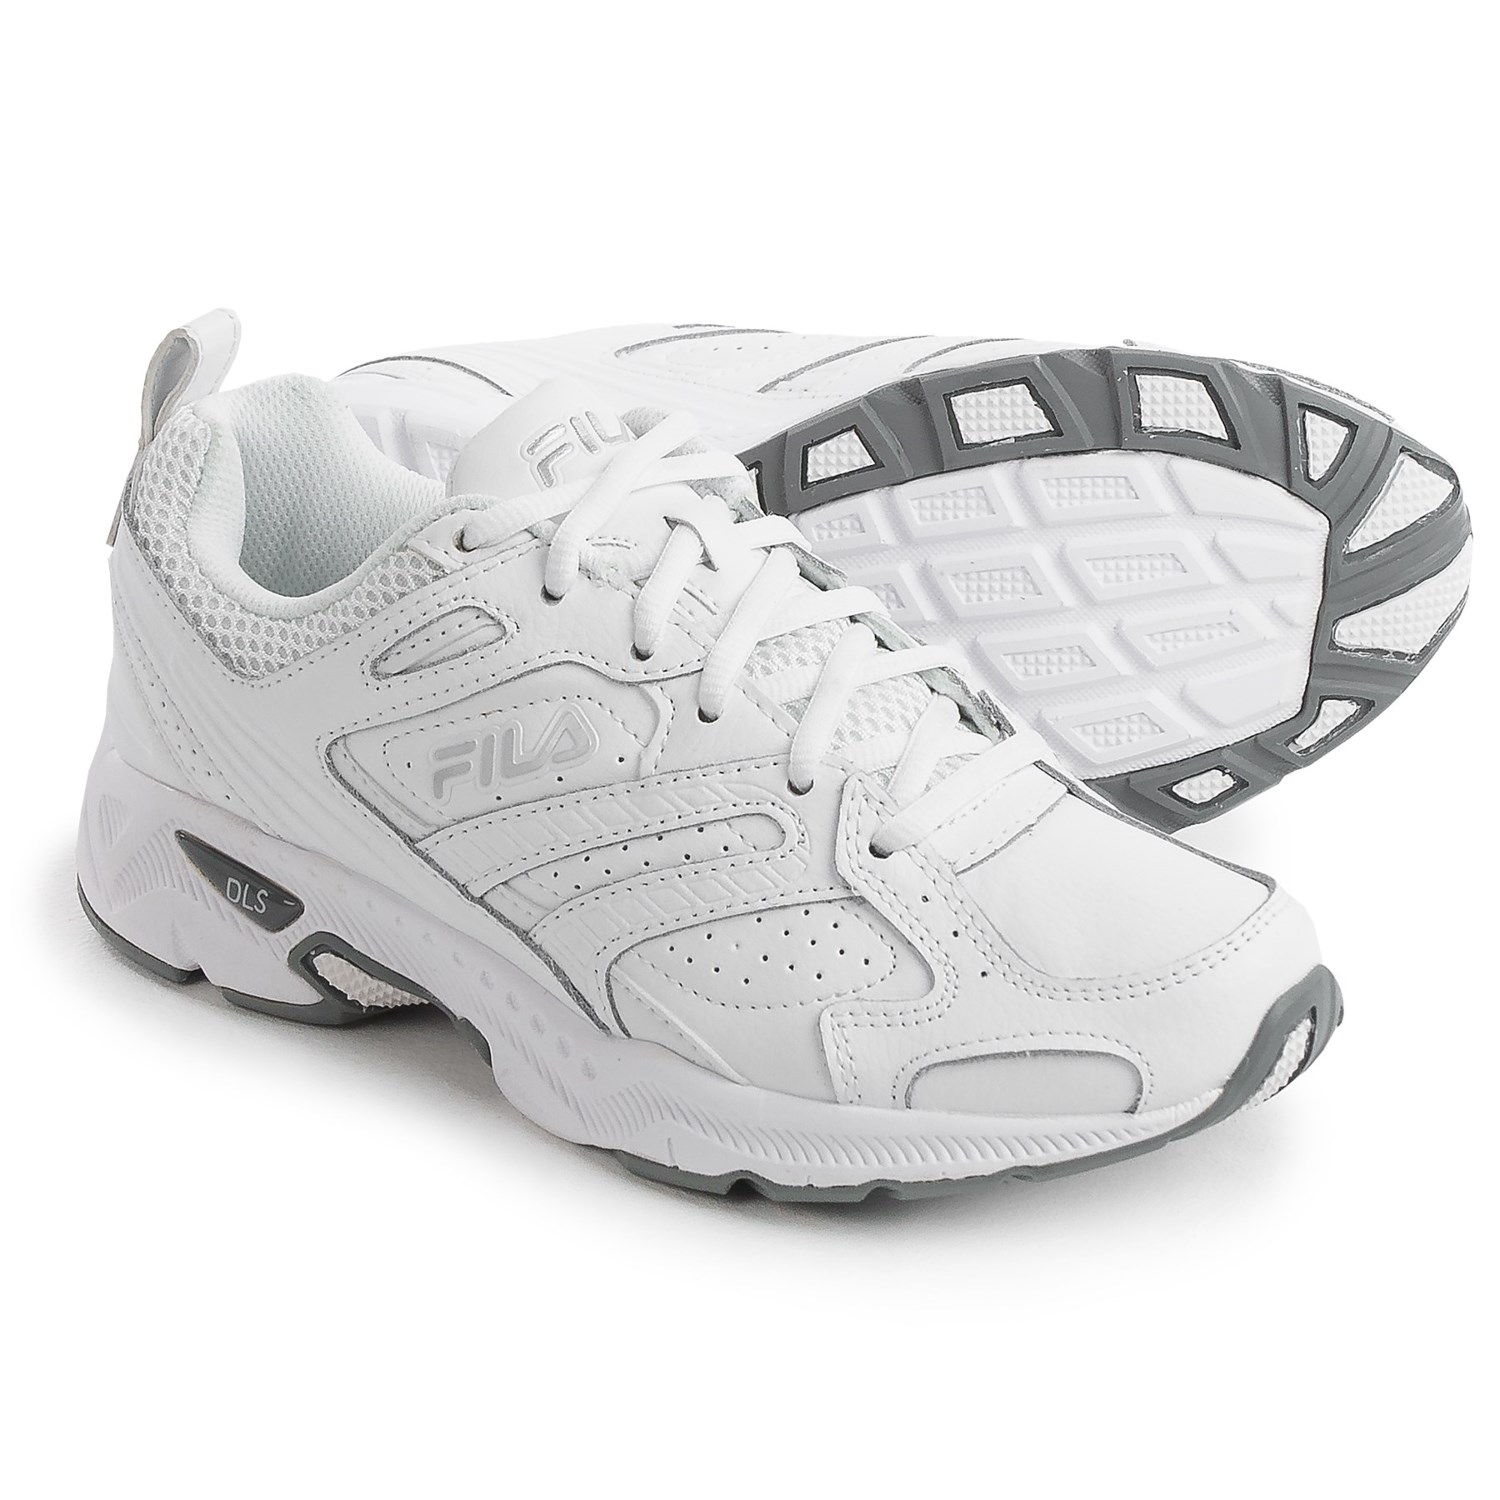 Fila Capture Walking Shoes For Women Save